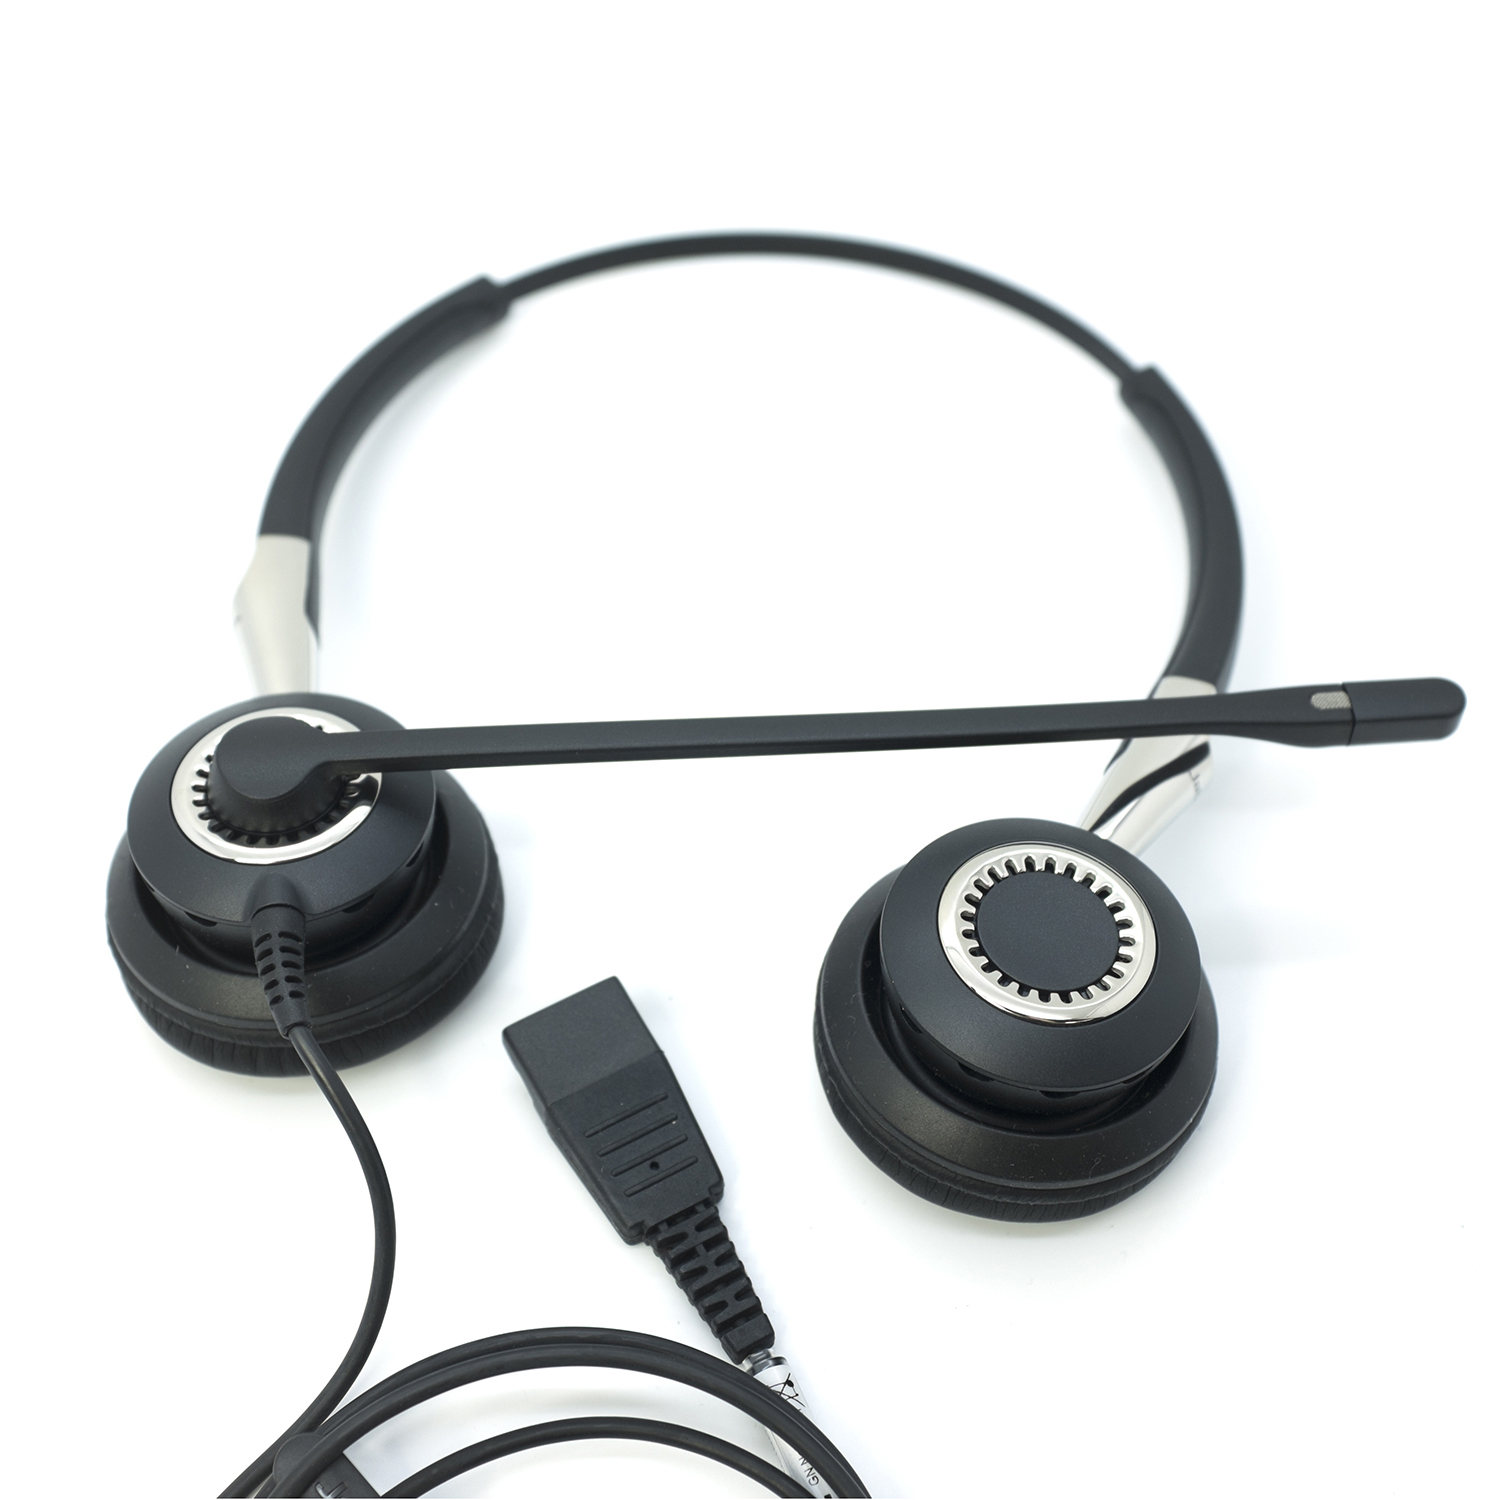 GN Jabra Biz 2400 Binaural Duo Noise Cancelling Wideband Headset